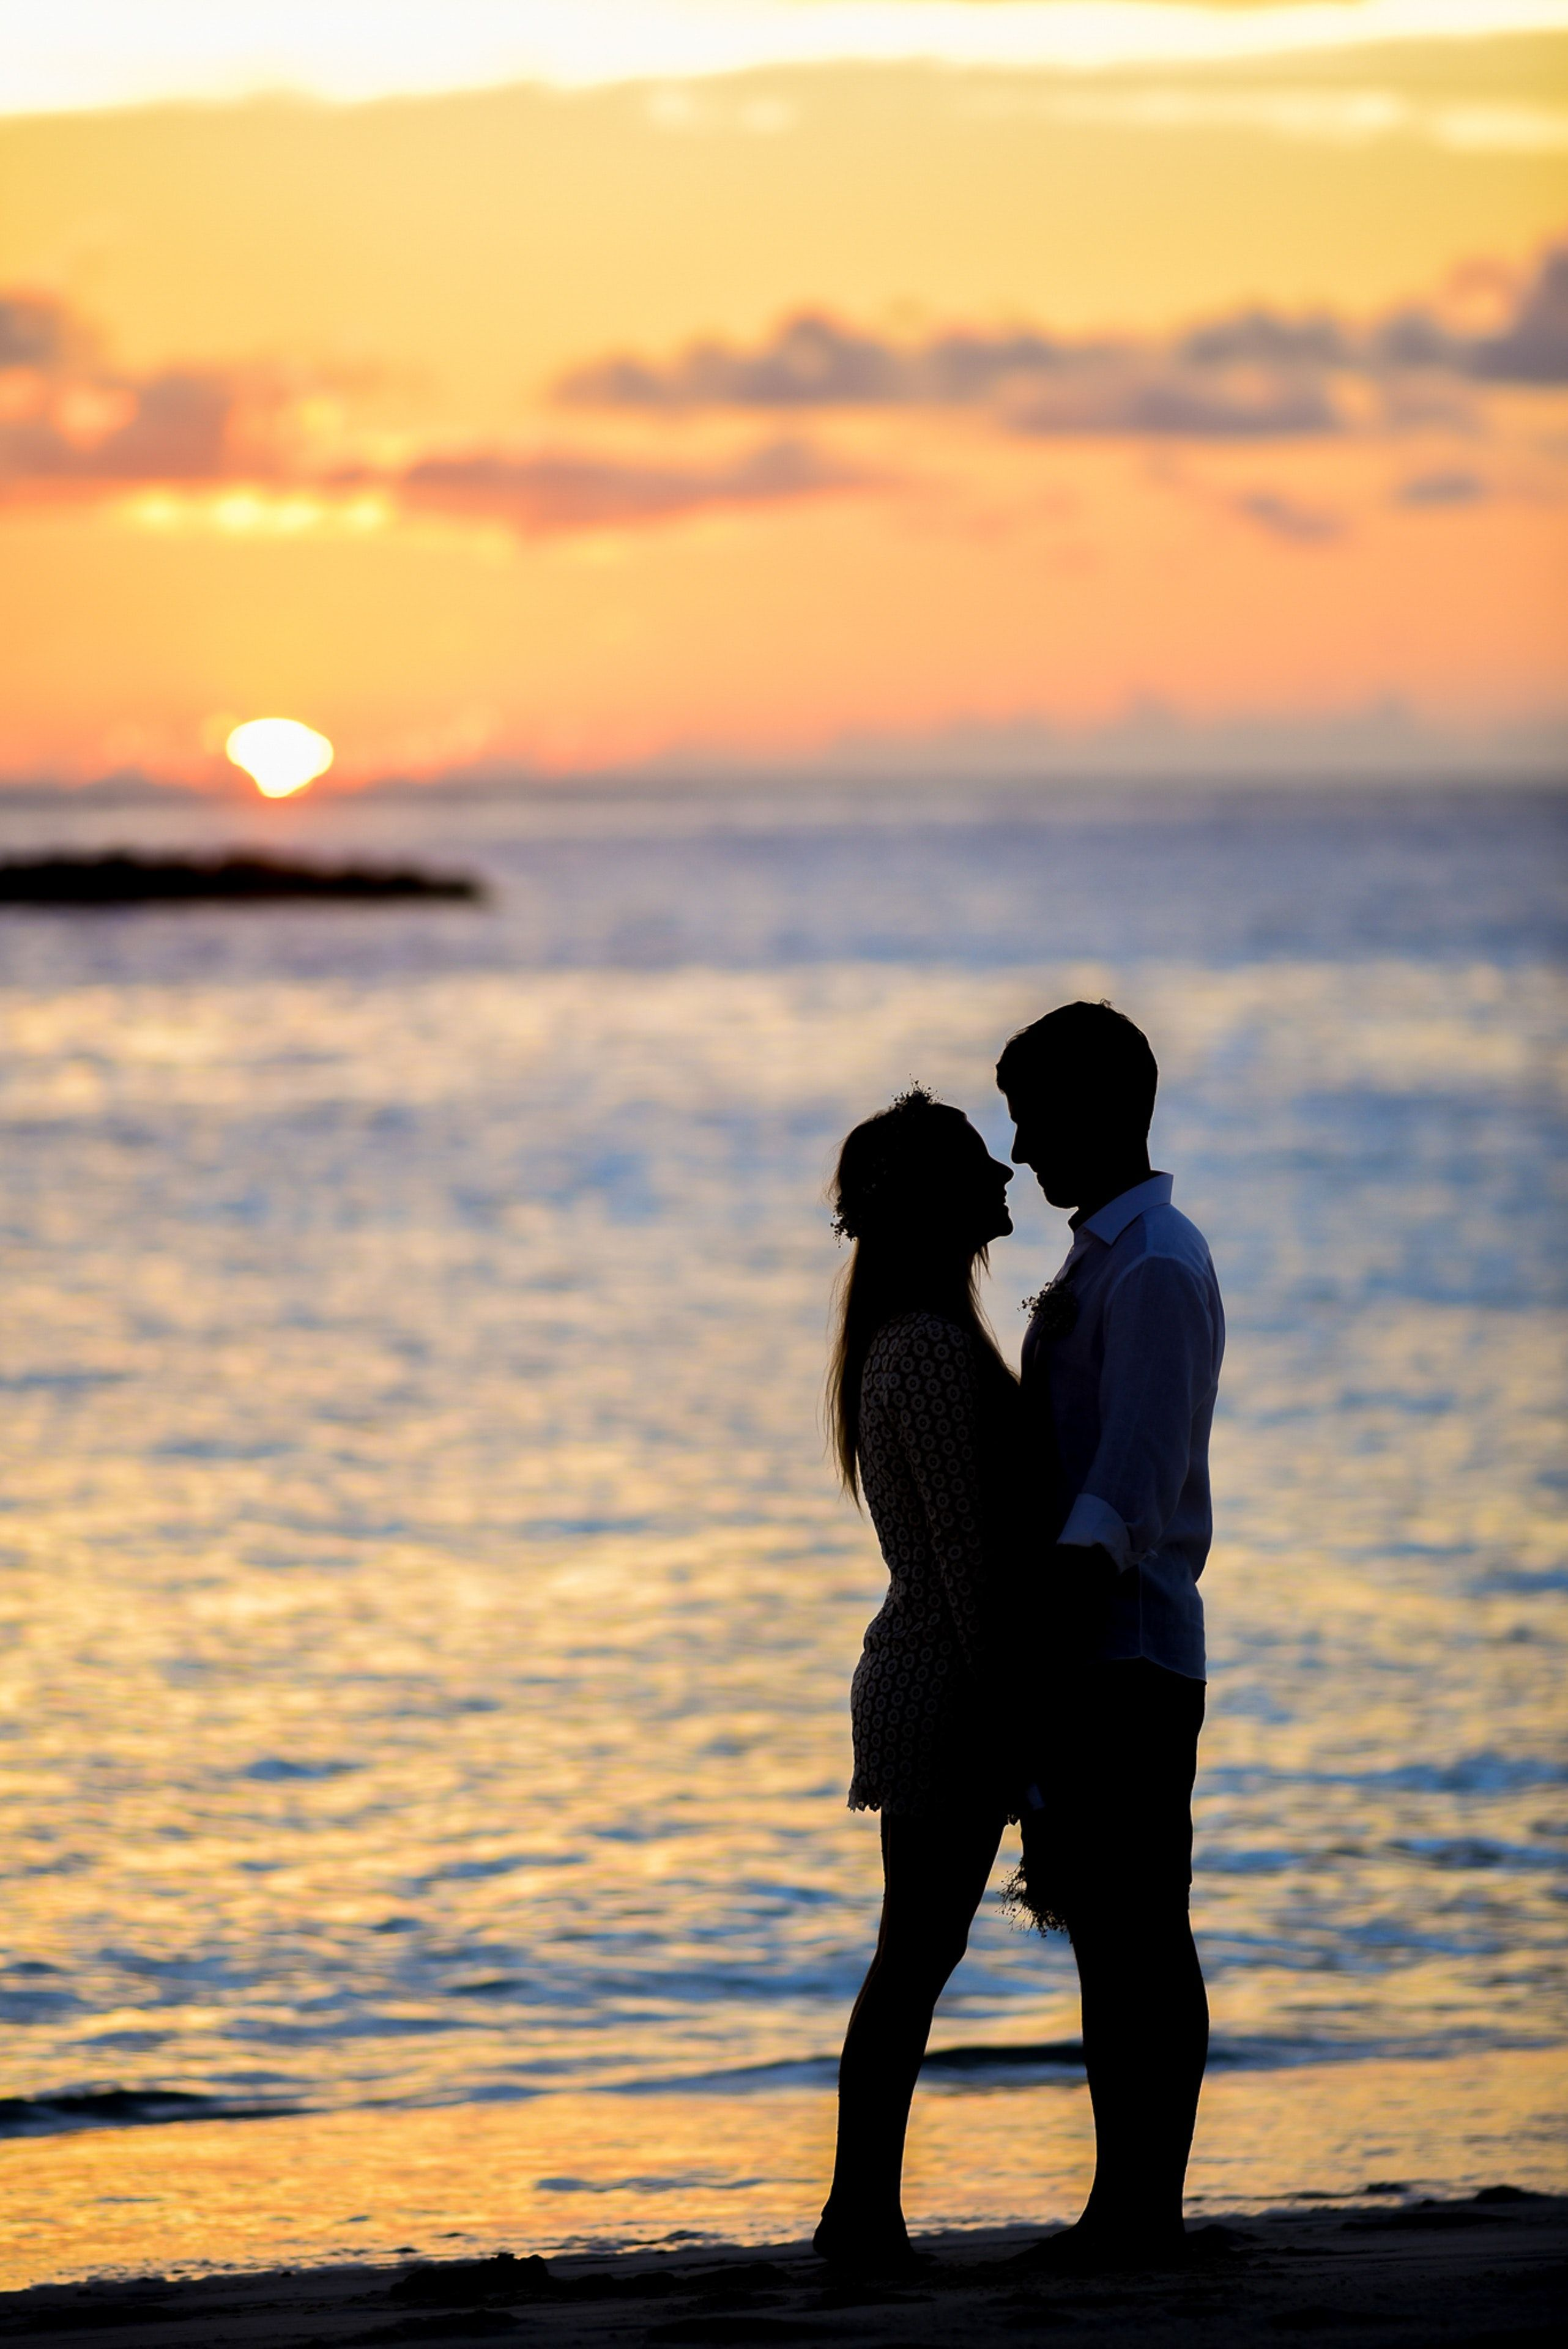 Pin On Online Dating Tips For Over 40